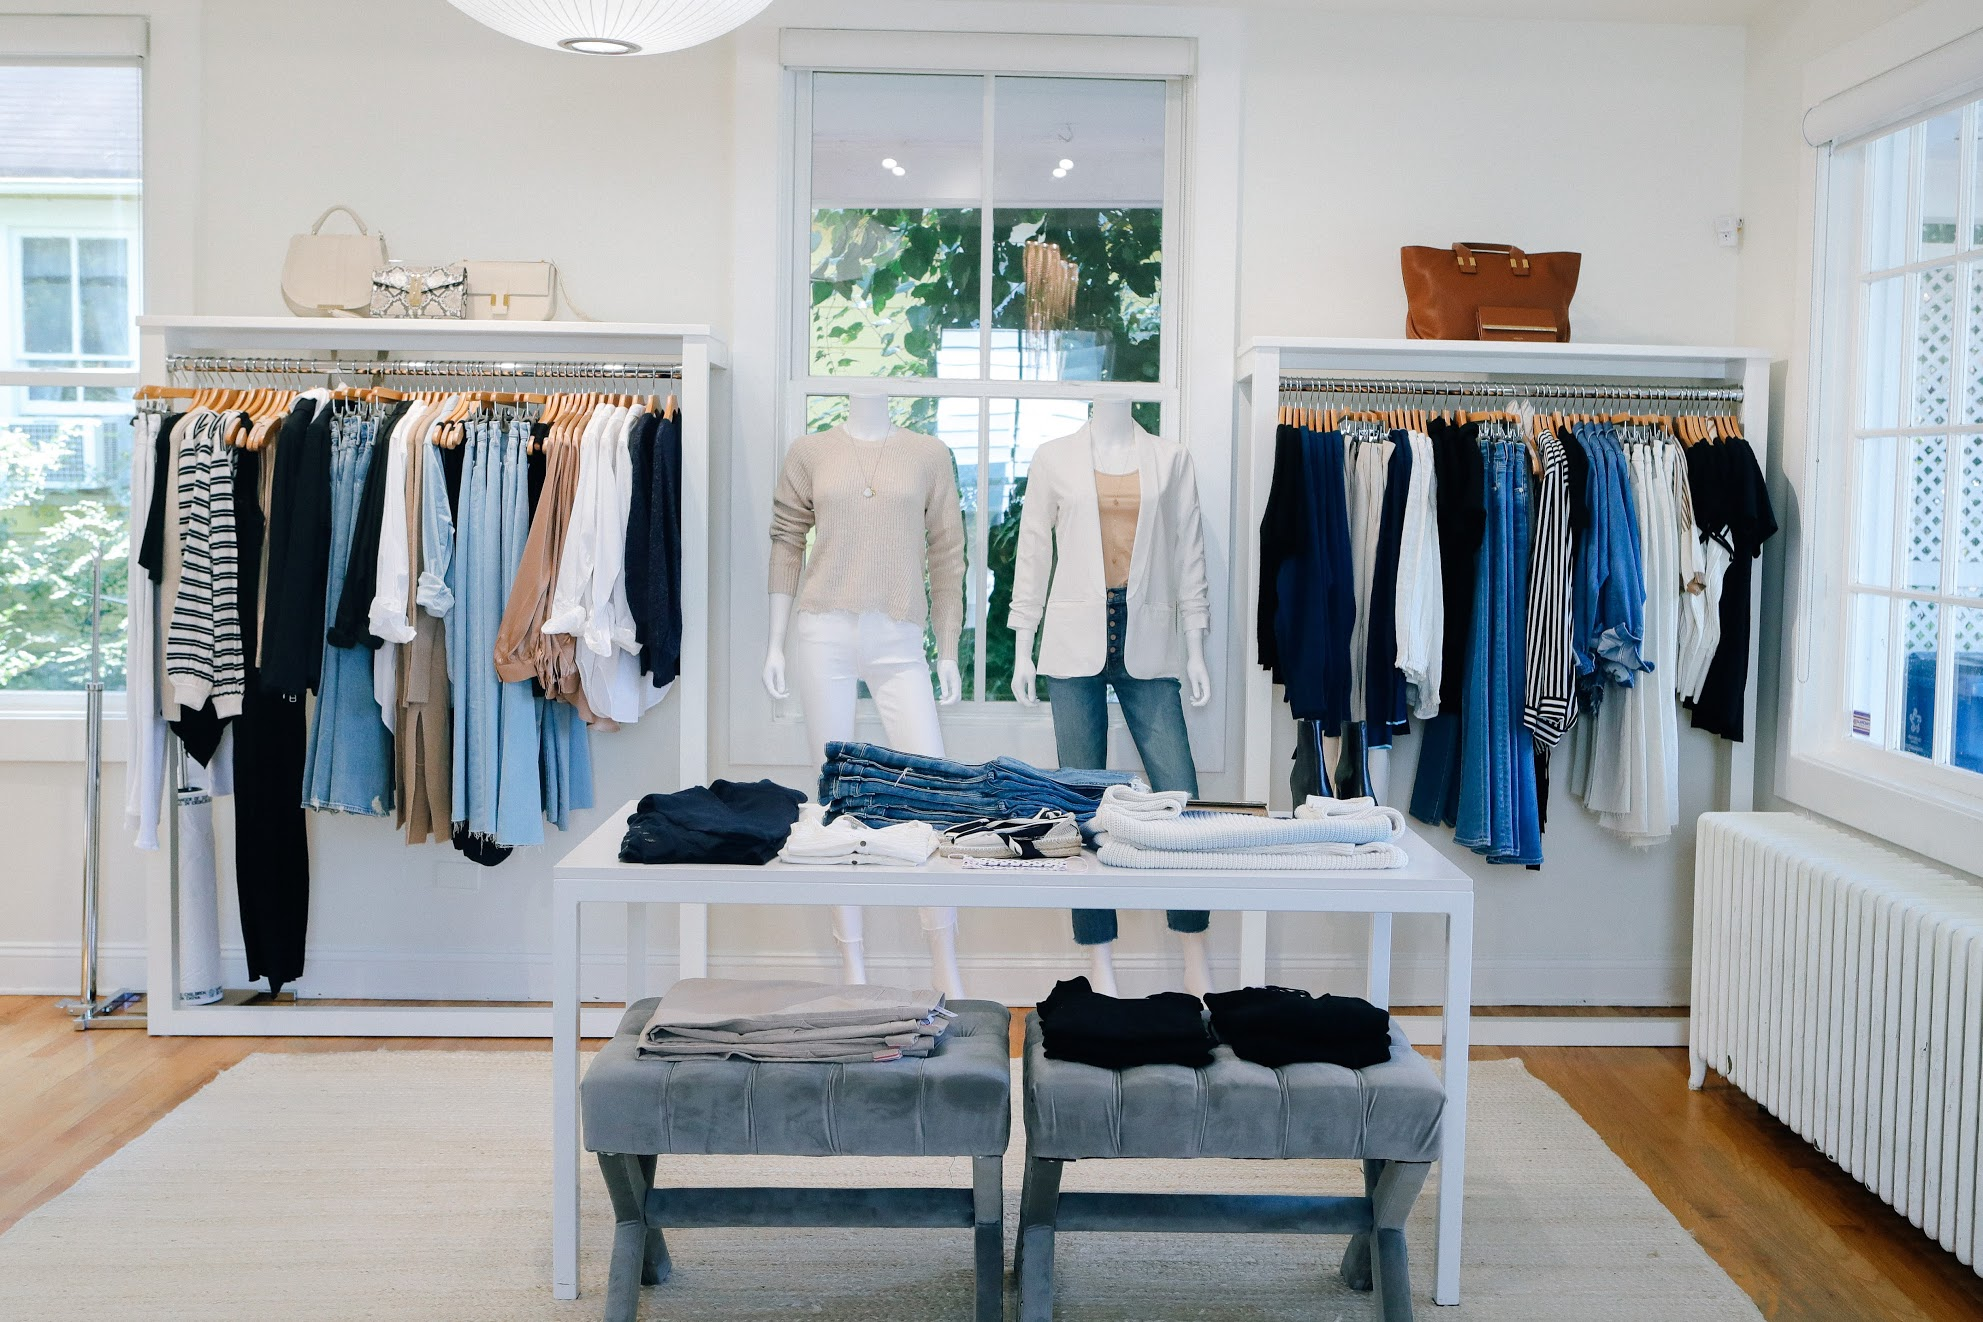 Wrabyn Boutique – The New Standard in Annapolis Fashion